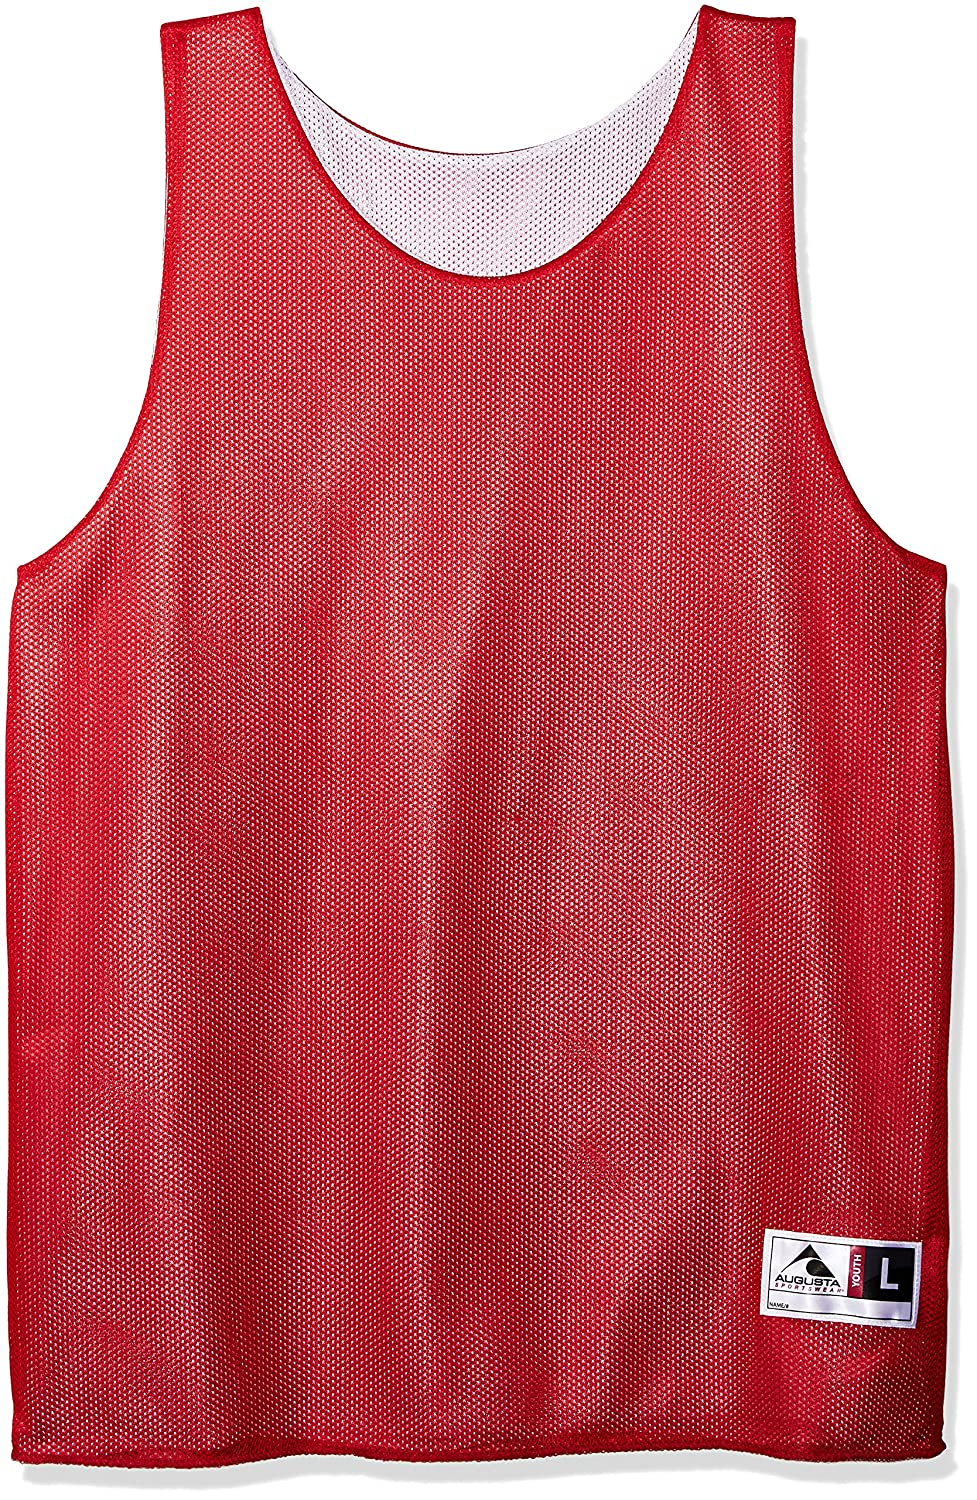 449156a073d8 Amazon.com   Augusta Sportswear Teen-Boys Youth Reversible Mini Mesh League  Tank   Clothing